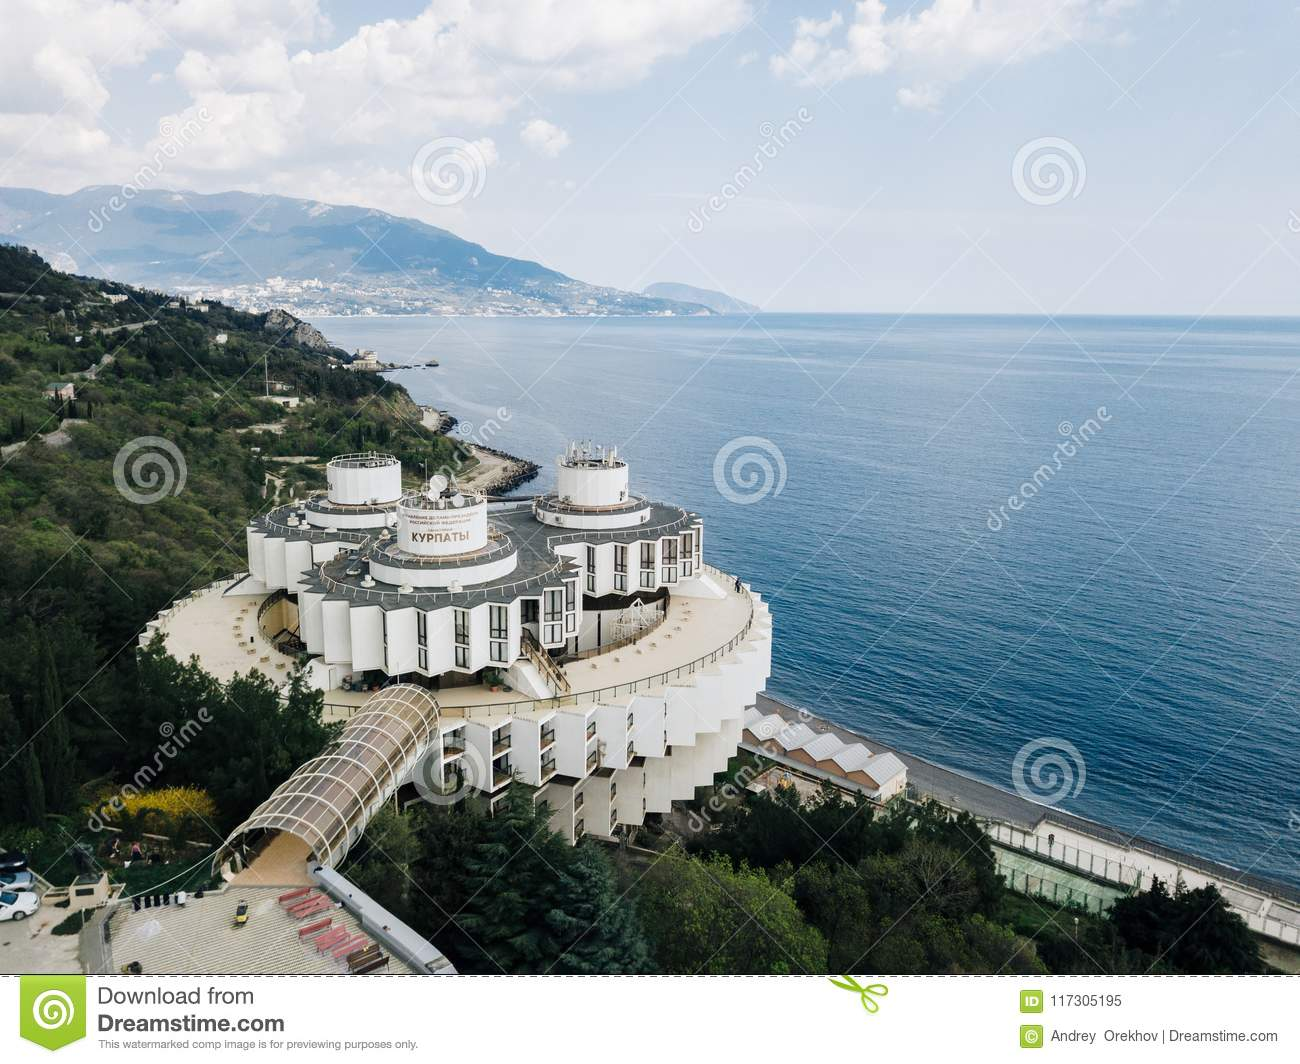 Sanatorium Miskhor (Yalta, Crimea): prices, reviews, how to get there, phone and other contacts